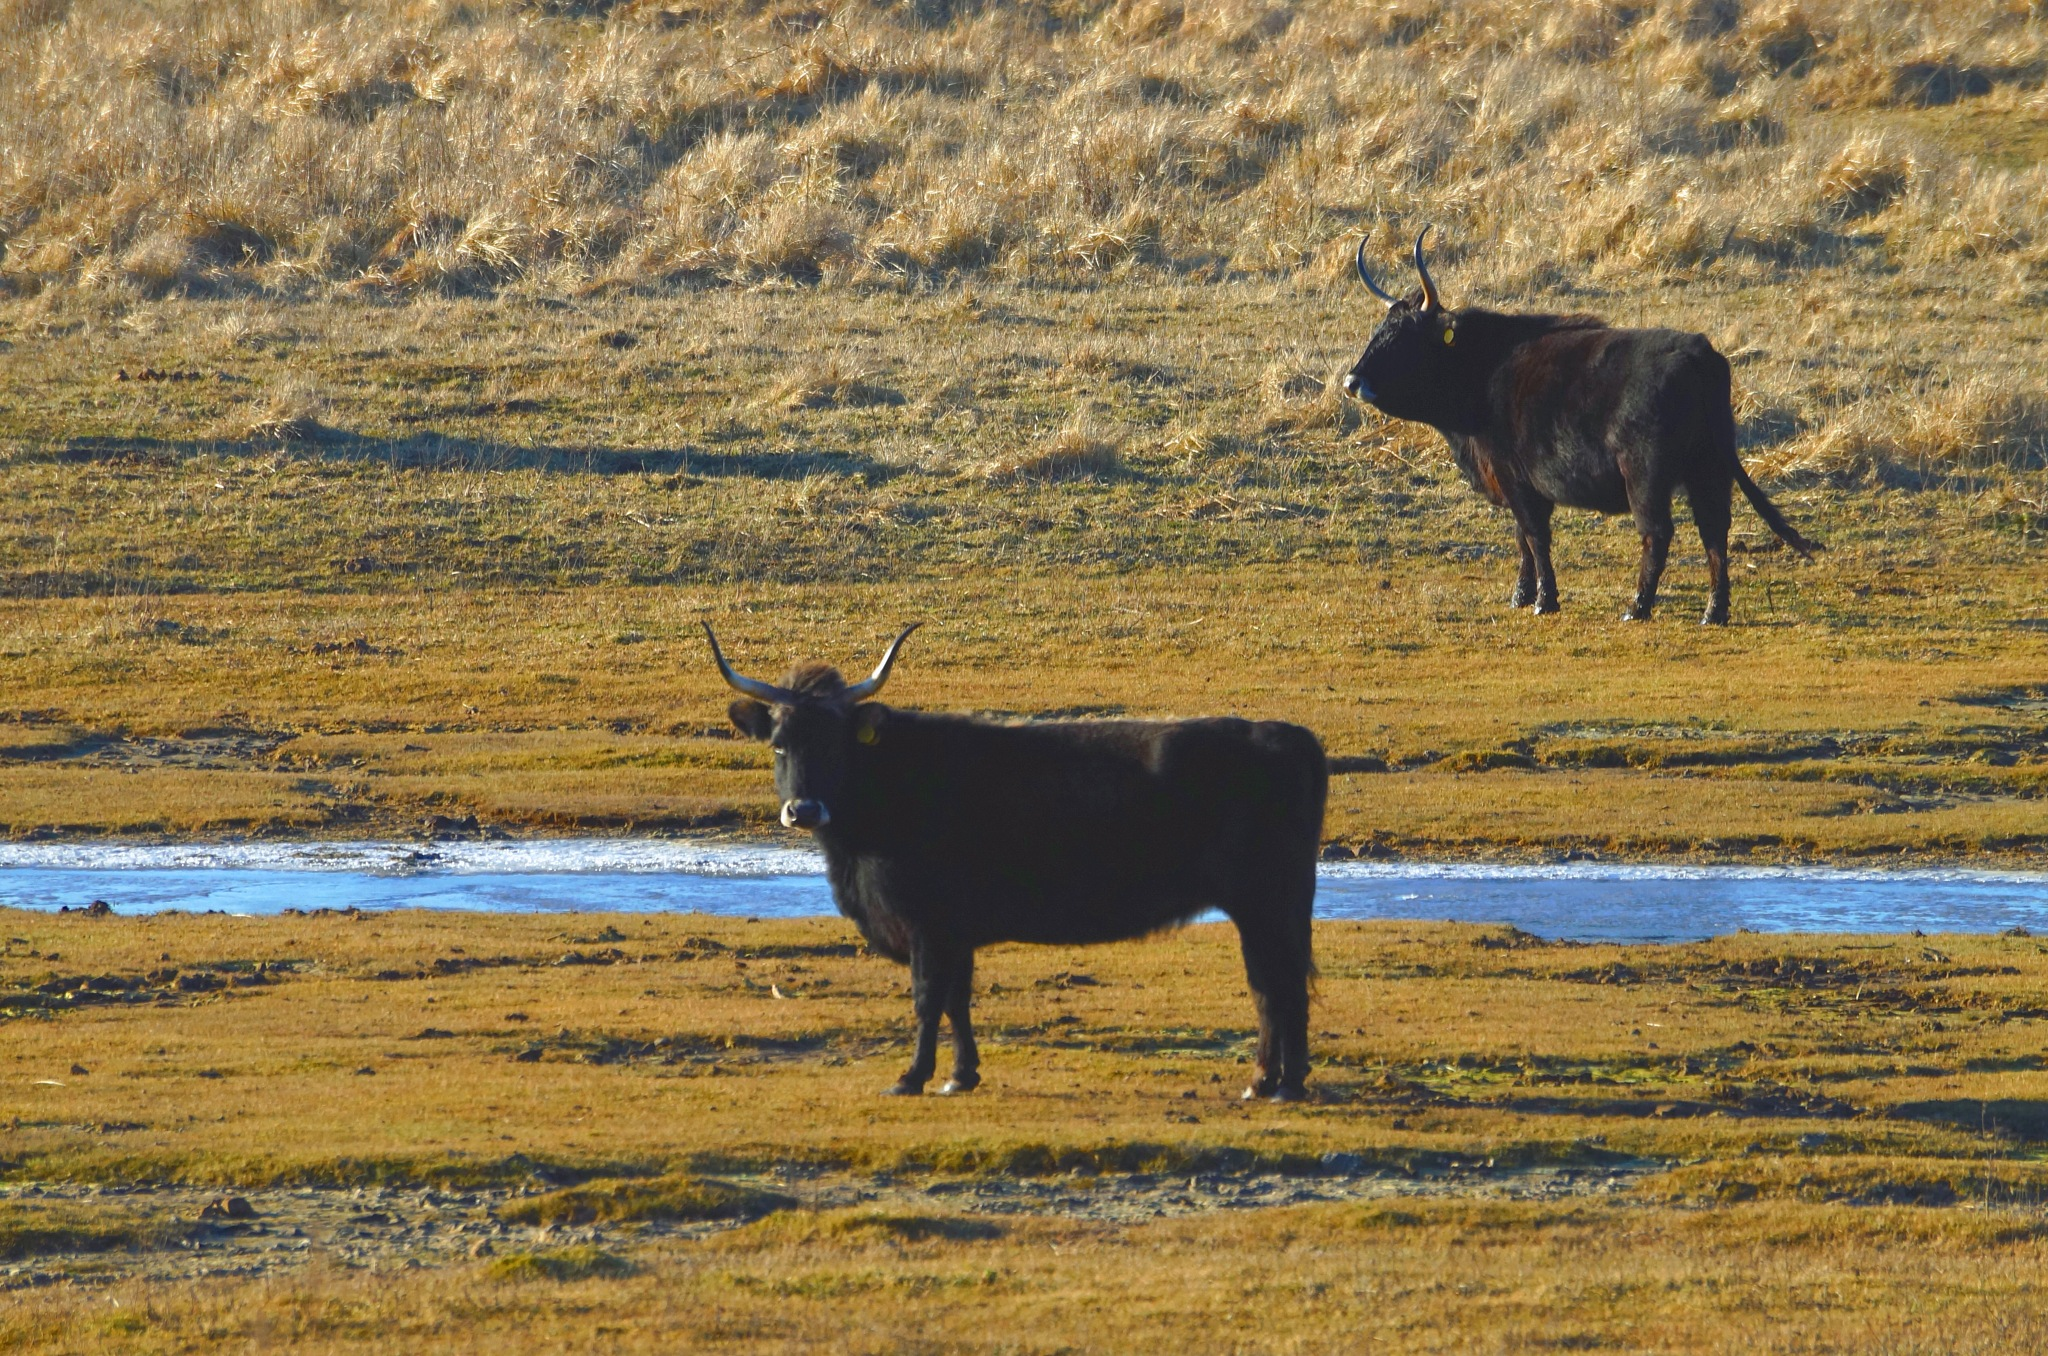 Heck Cattle at Cold Winter Morning by Marian Baay